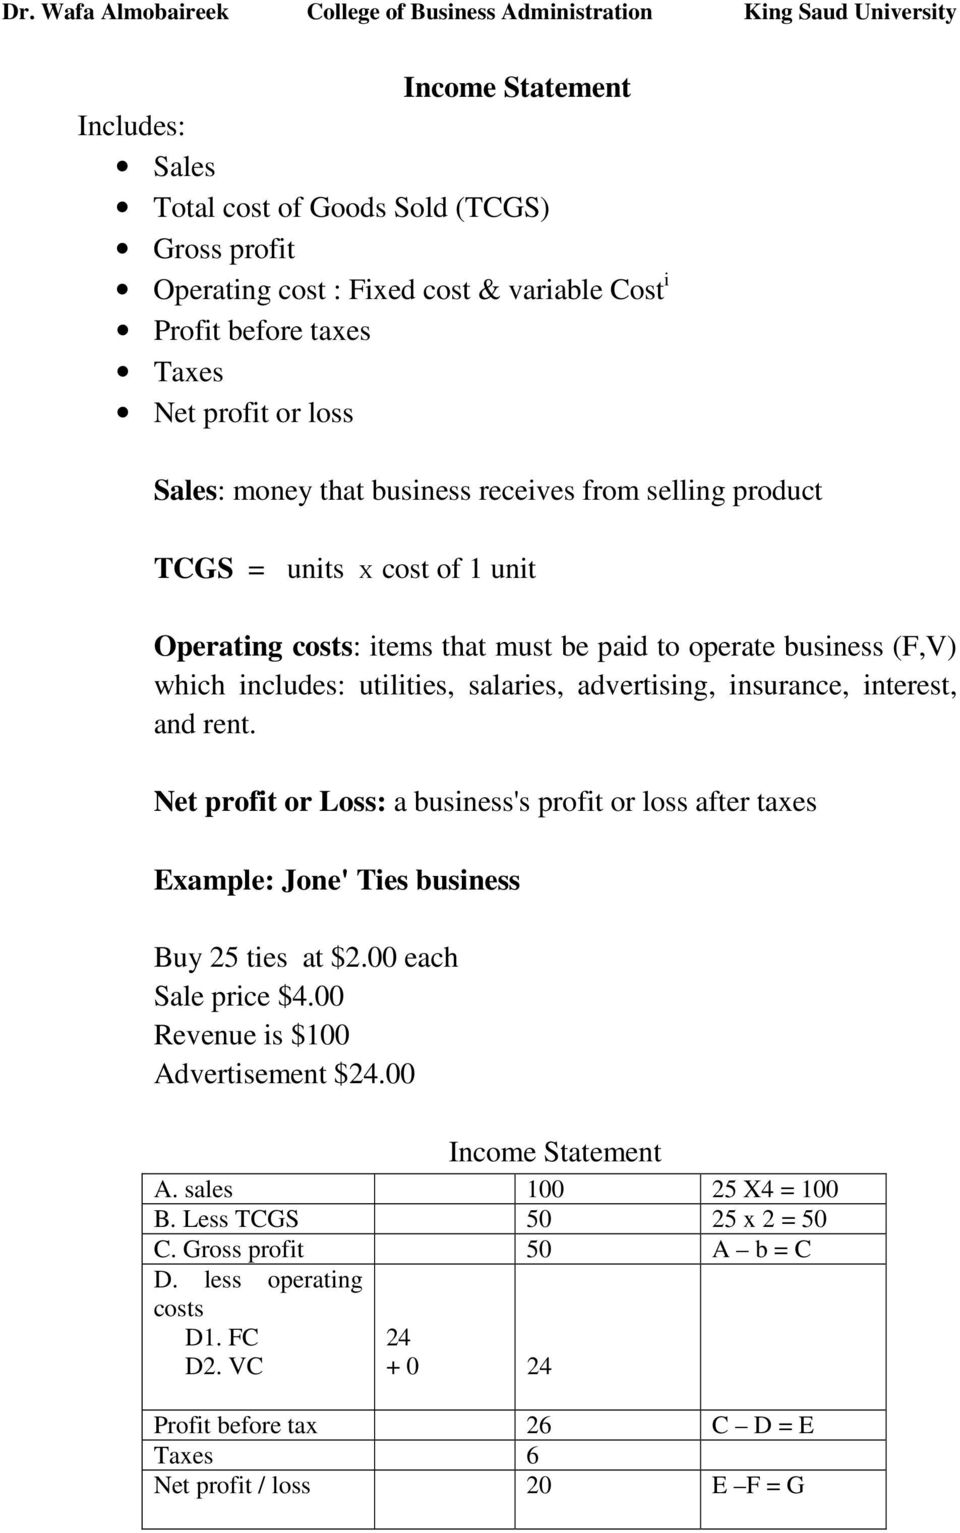 interest, and rent. Net profit or Loss: a business's profit or loss after taxes Example: Jone' Ties business Buy 25 ties at $2.00 each Sale price $4.00 Revenue is $100 Advertisement $24.